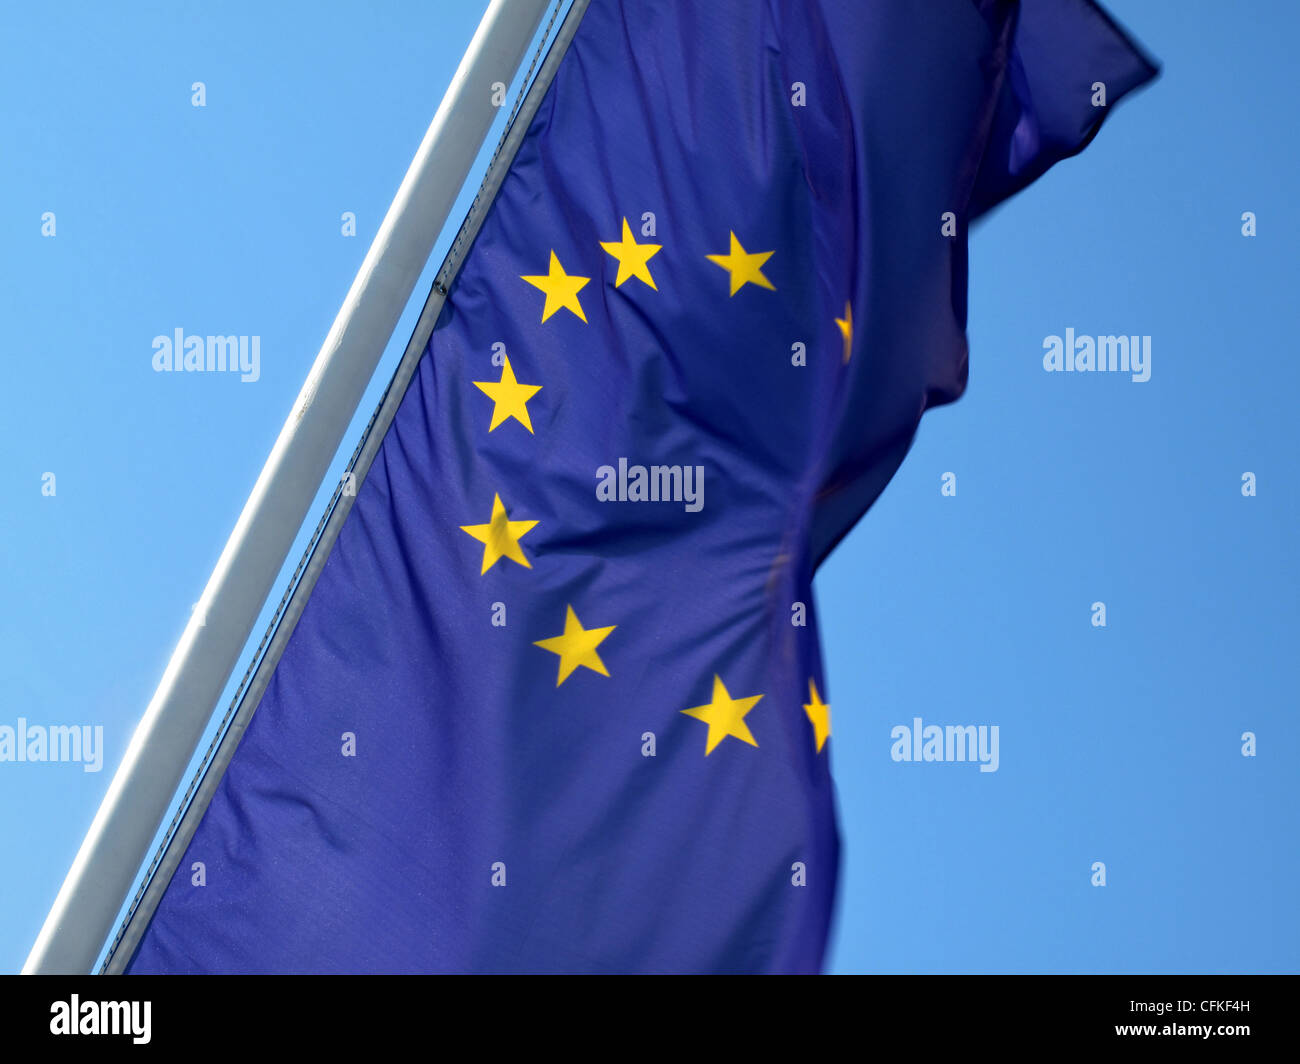 Flag of the European Union EEC - Stock Image